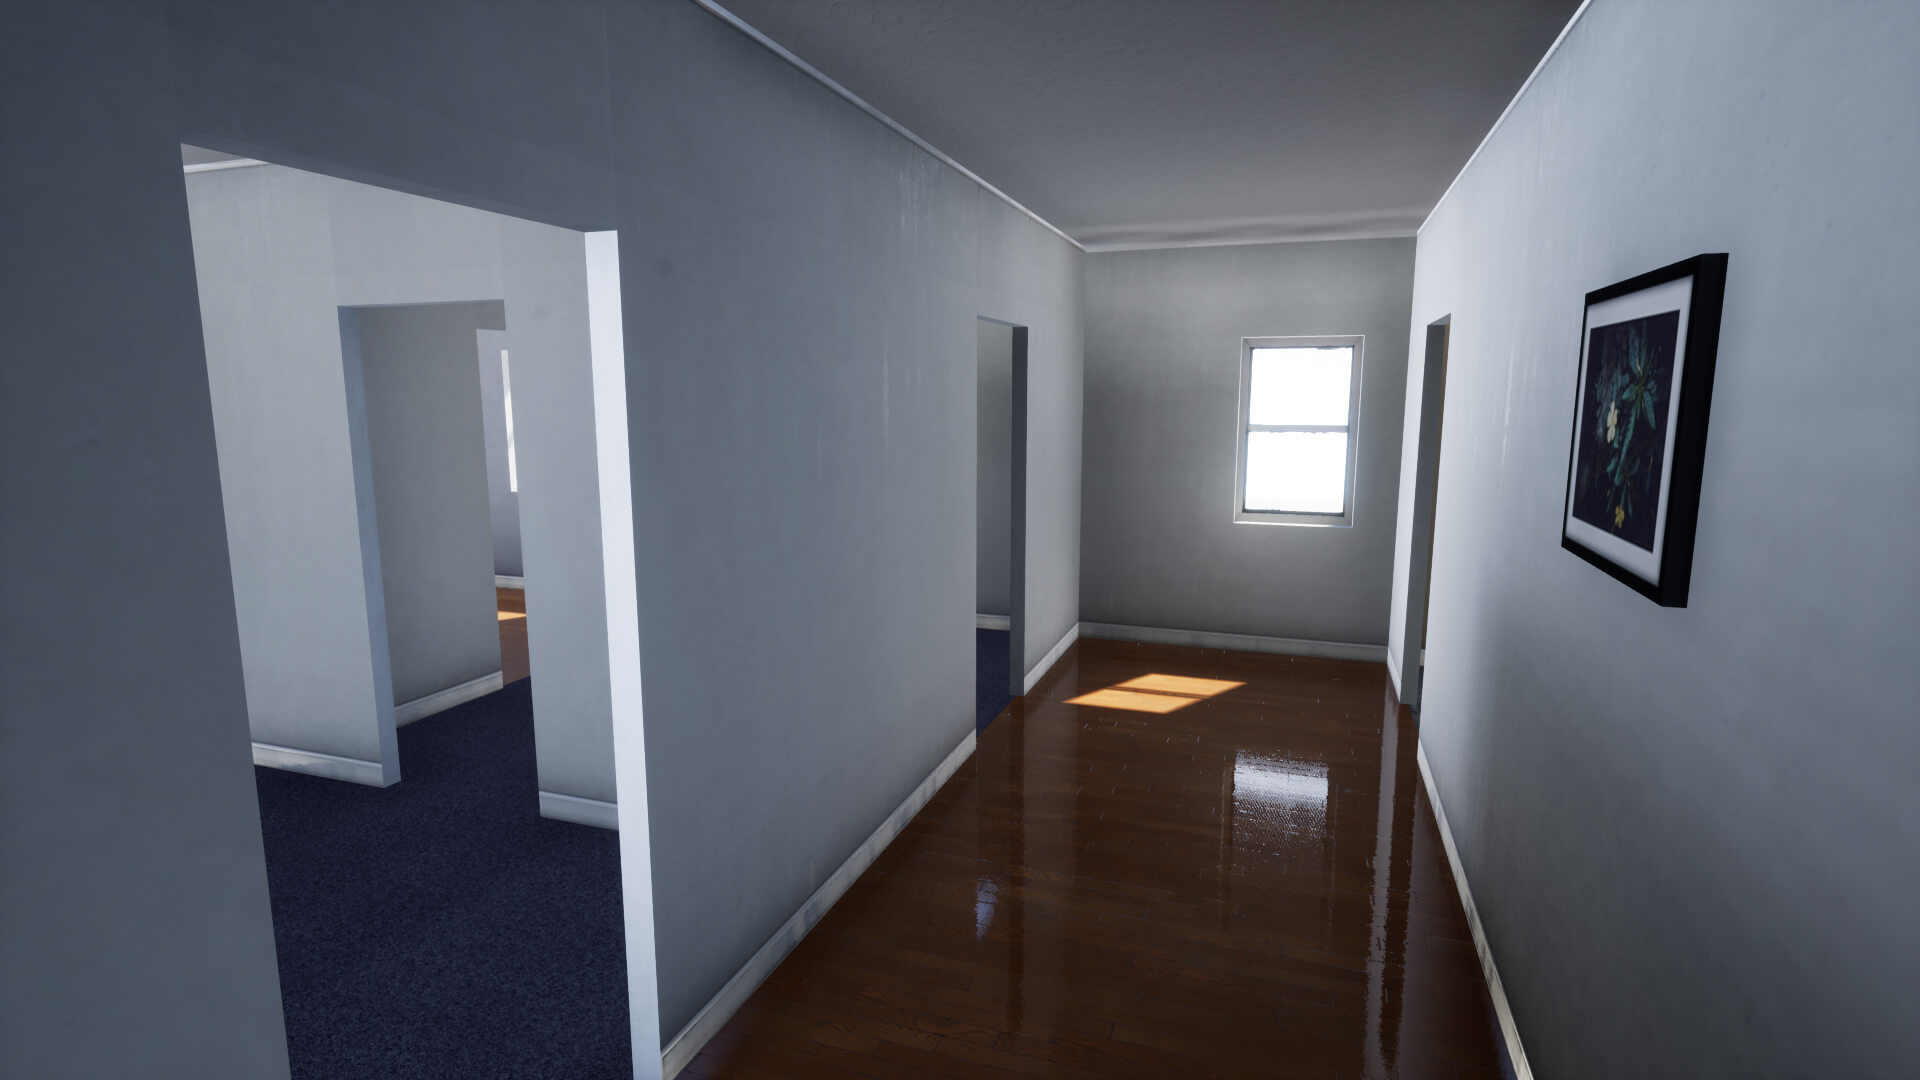 residential_interior_02